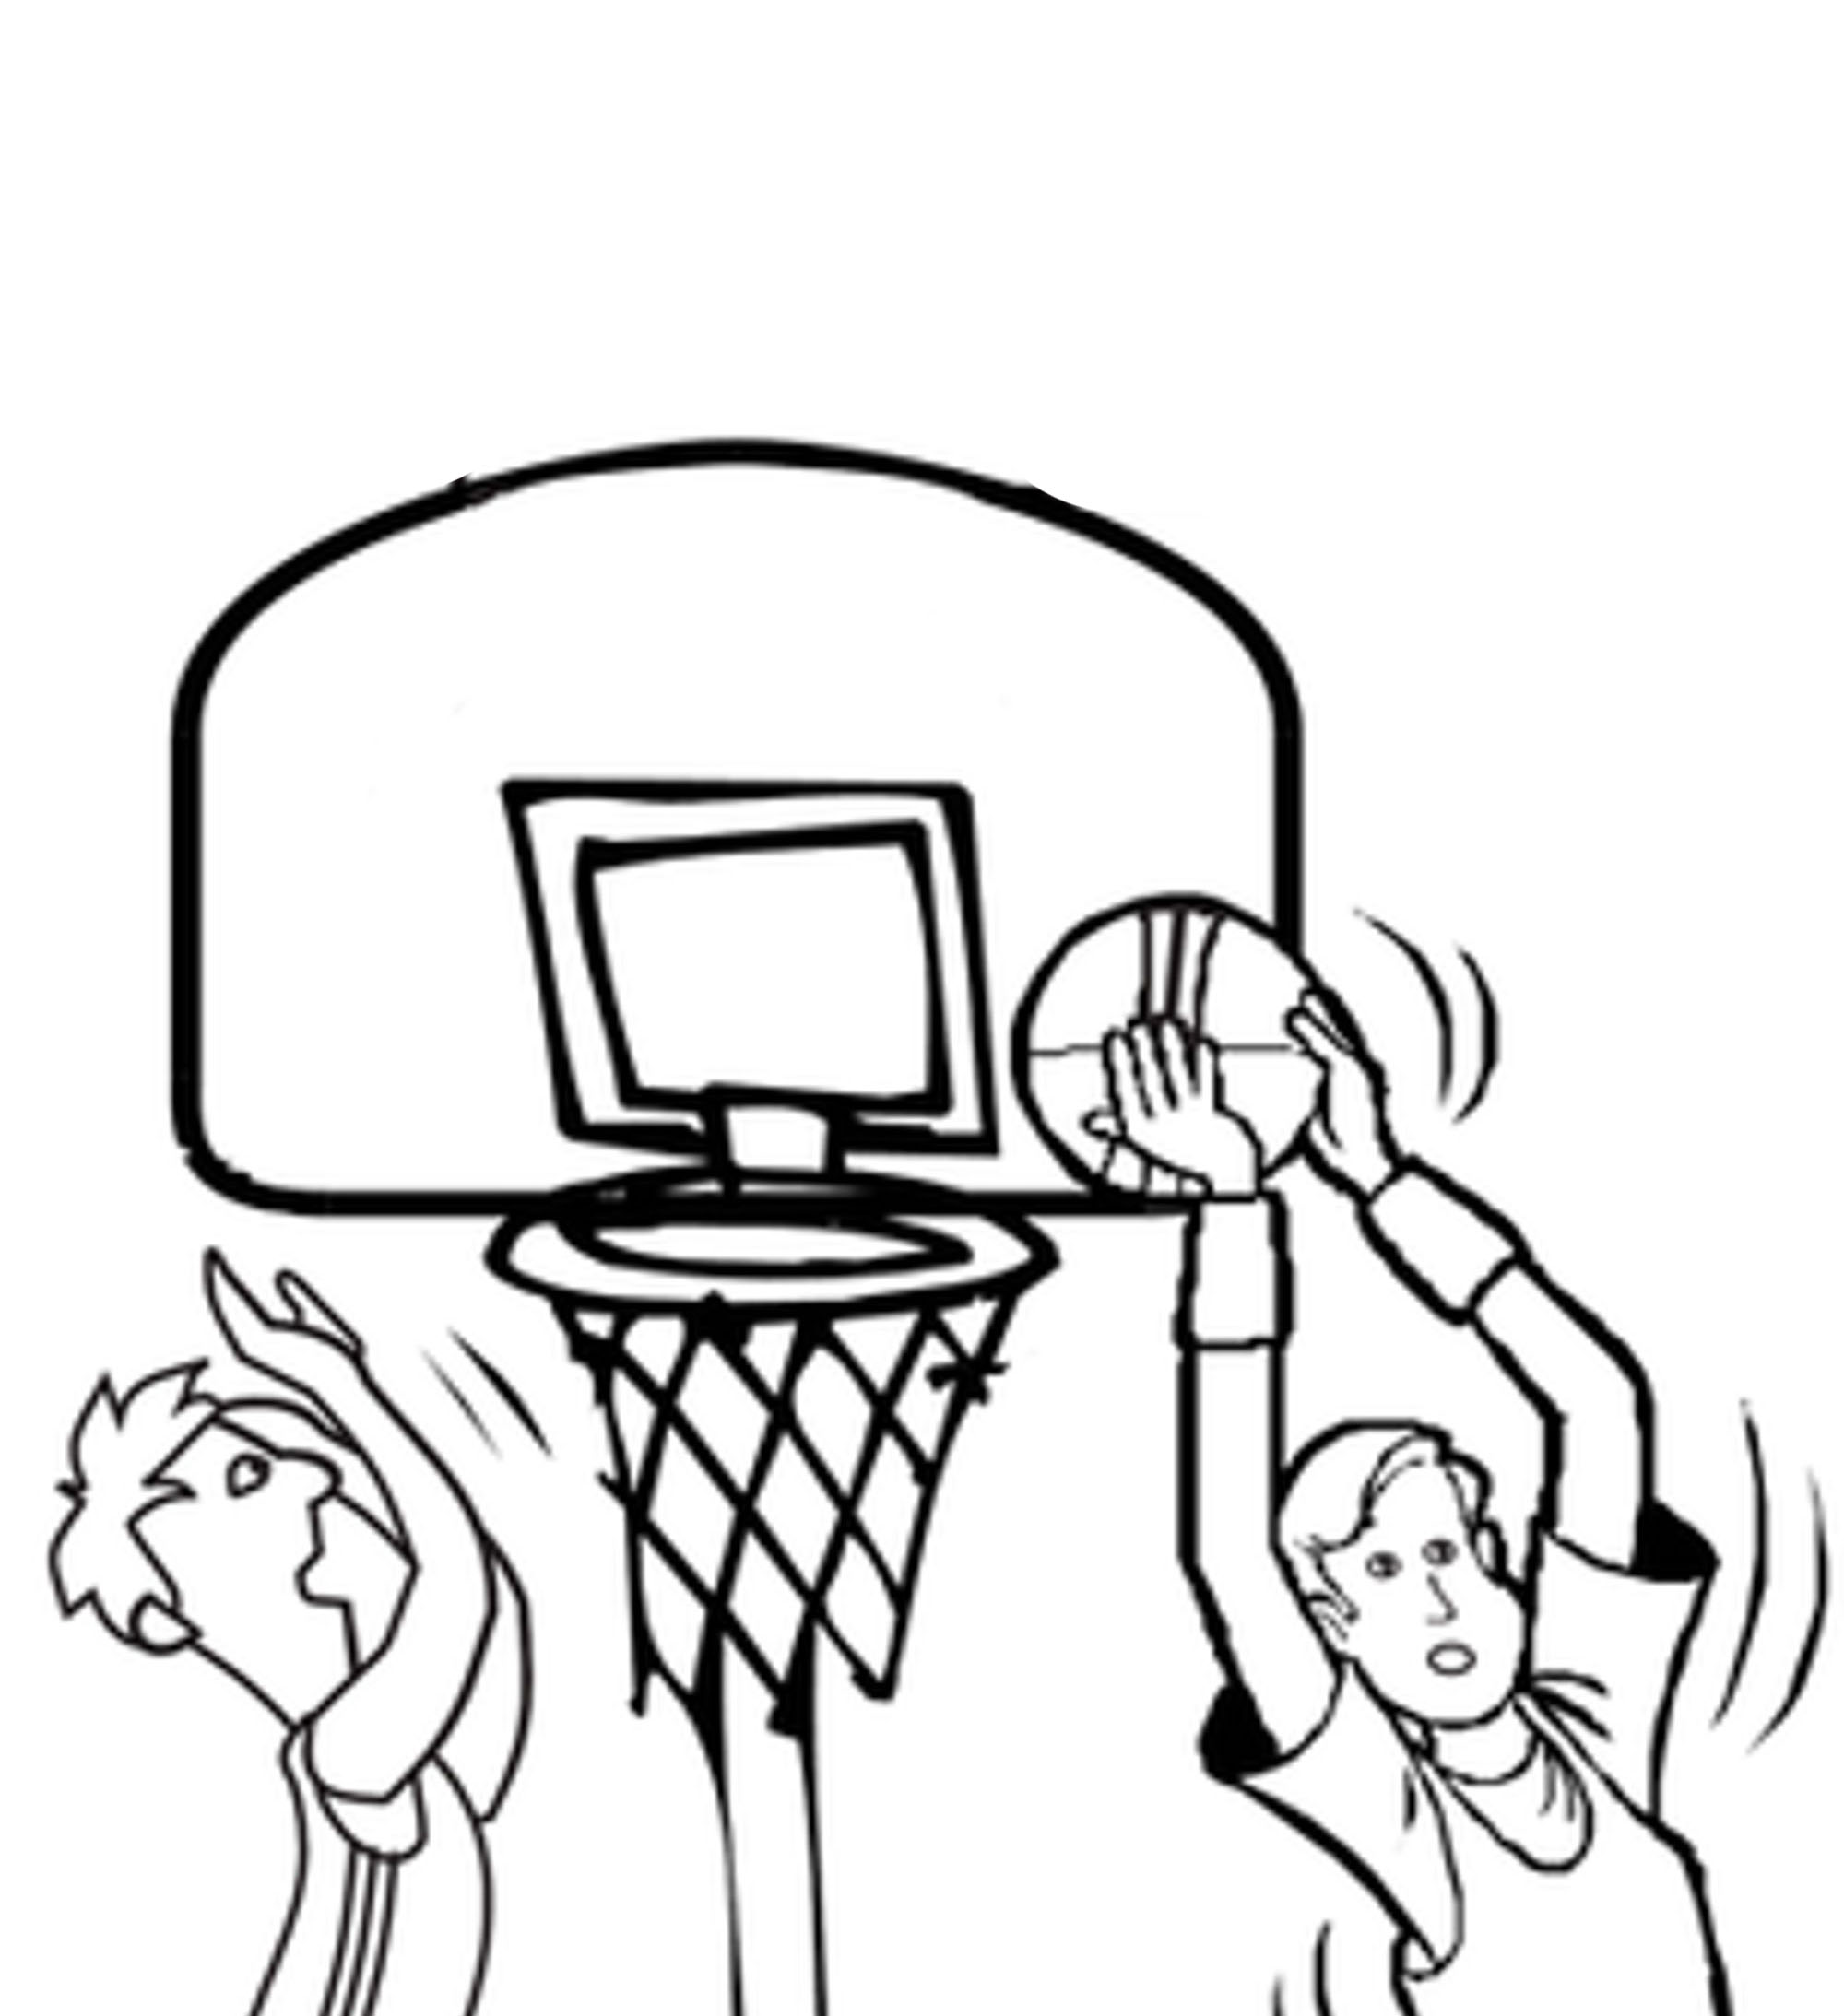 Basketball Coloring Pages At Getdrawings Com Free For Personal Use